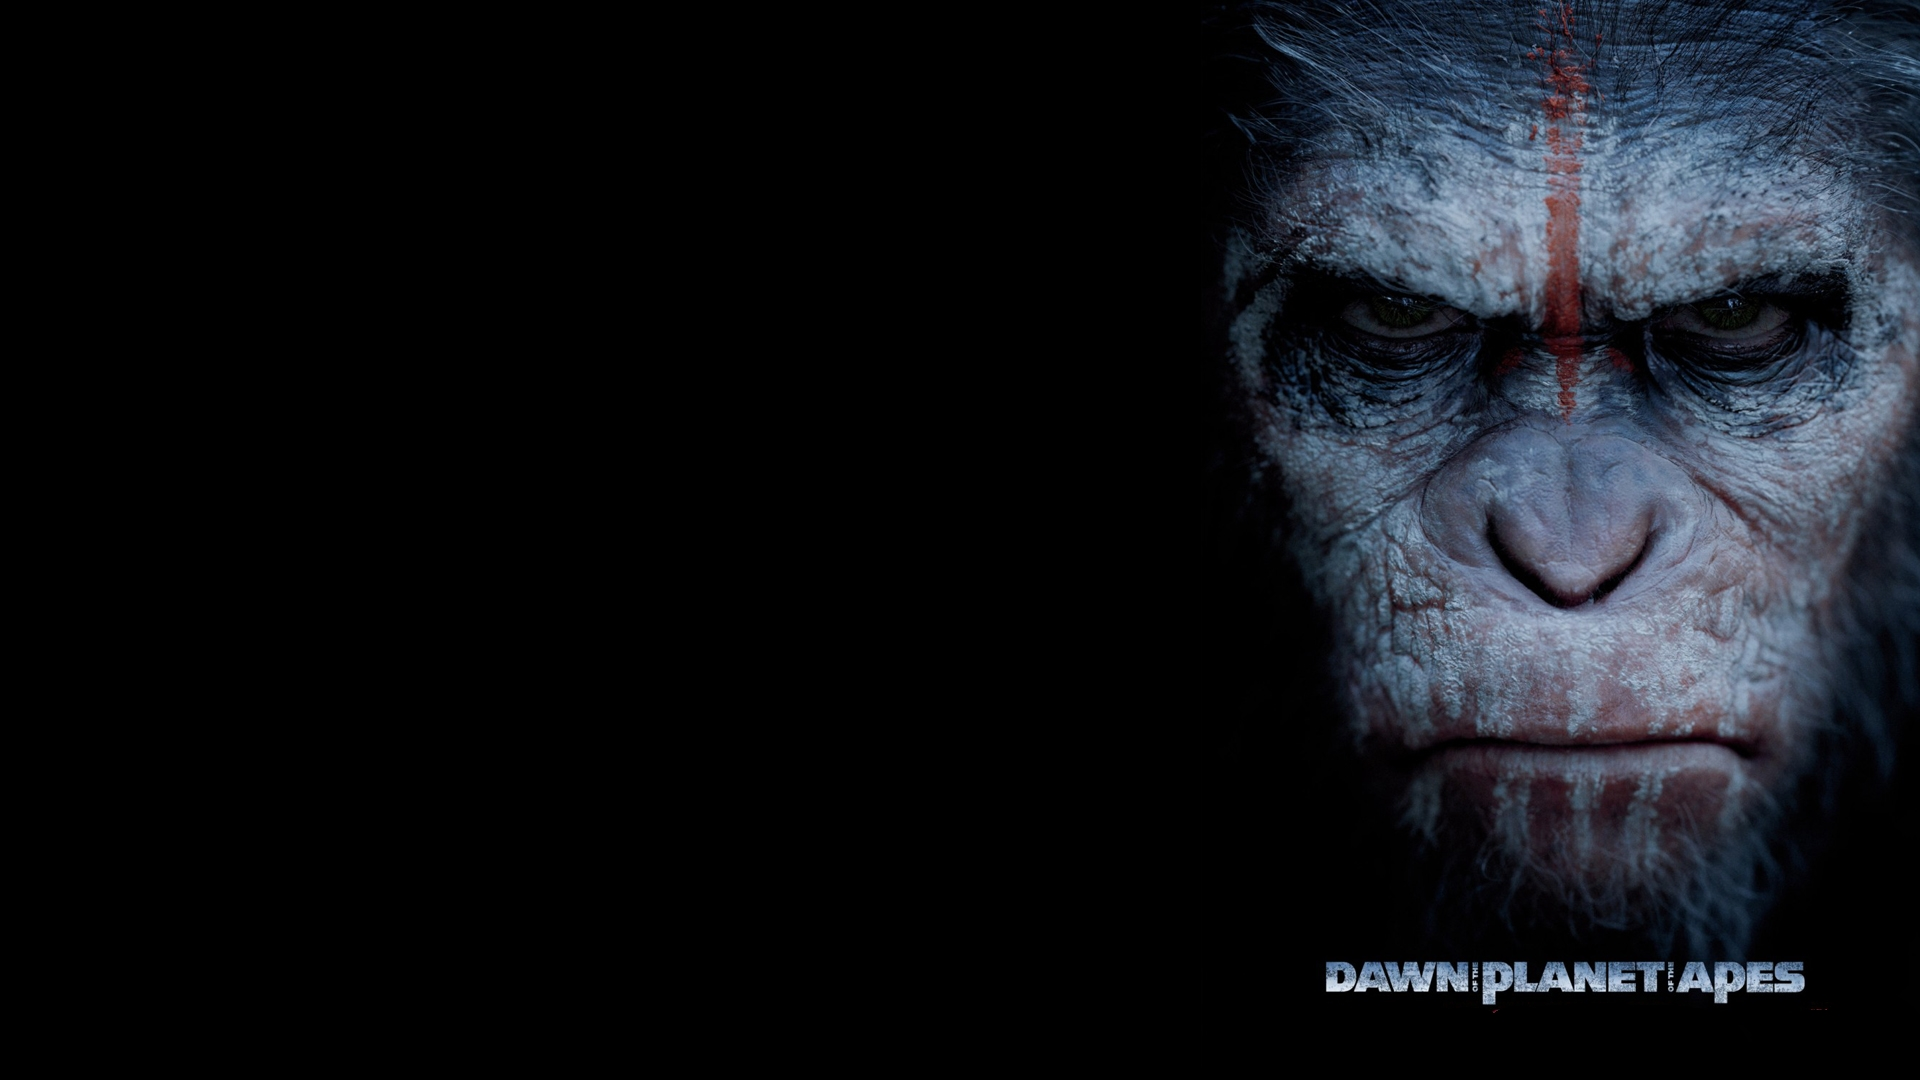 Planet Of The Apes Wallpaper: 29 Dawn Of The Planet Of The Apes HD Wallpapers